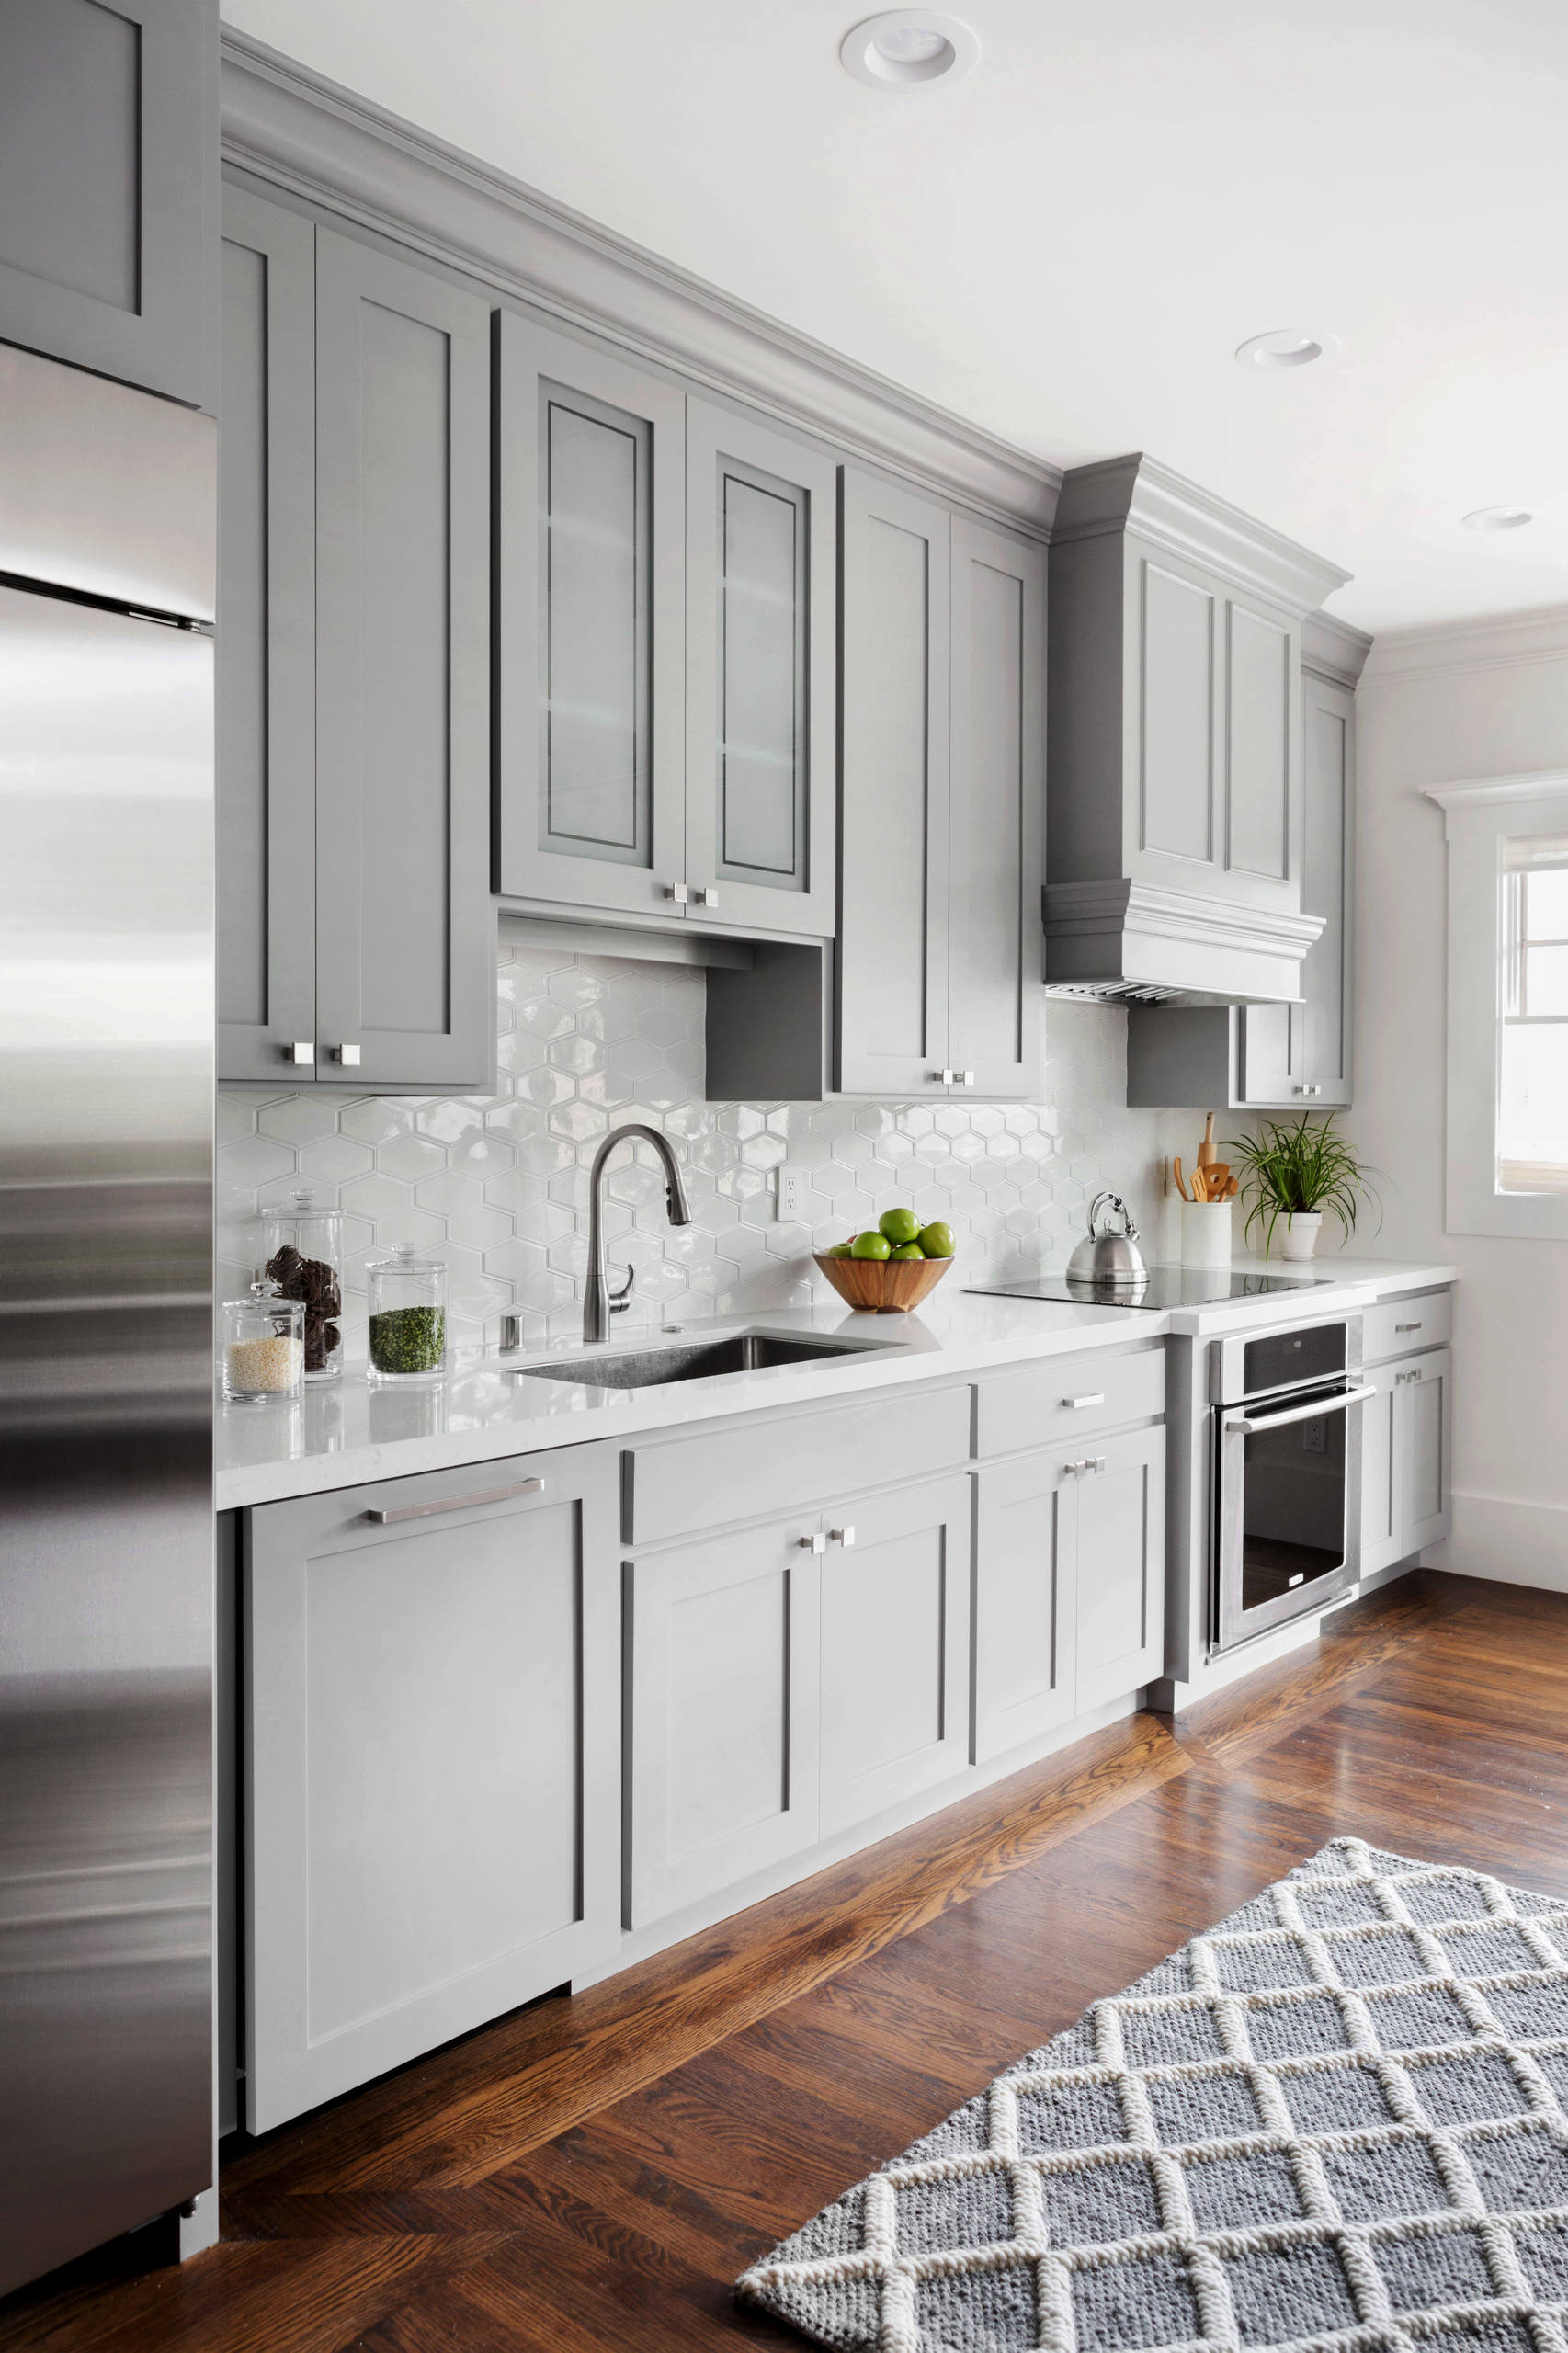 75 Beautiful Gray Kitchen Pictures Ideas November 2020 Houzz